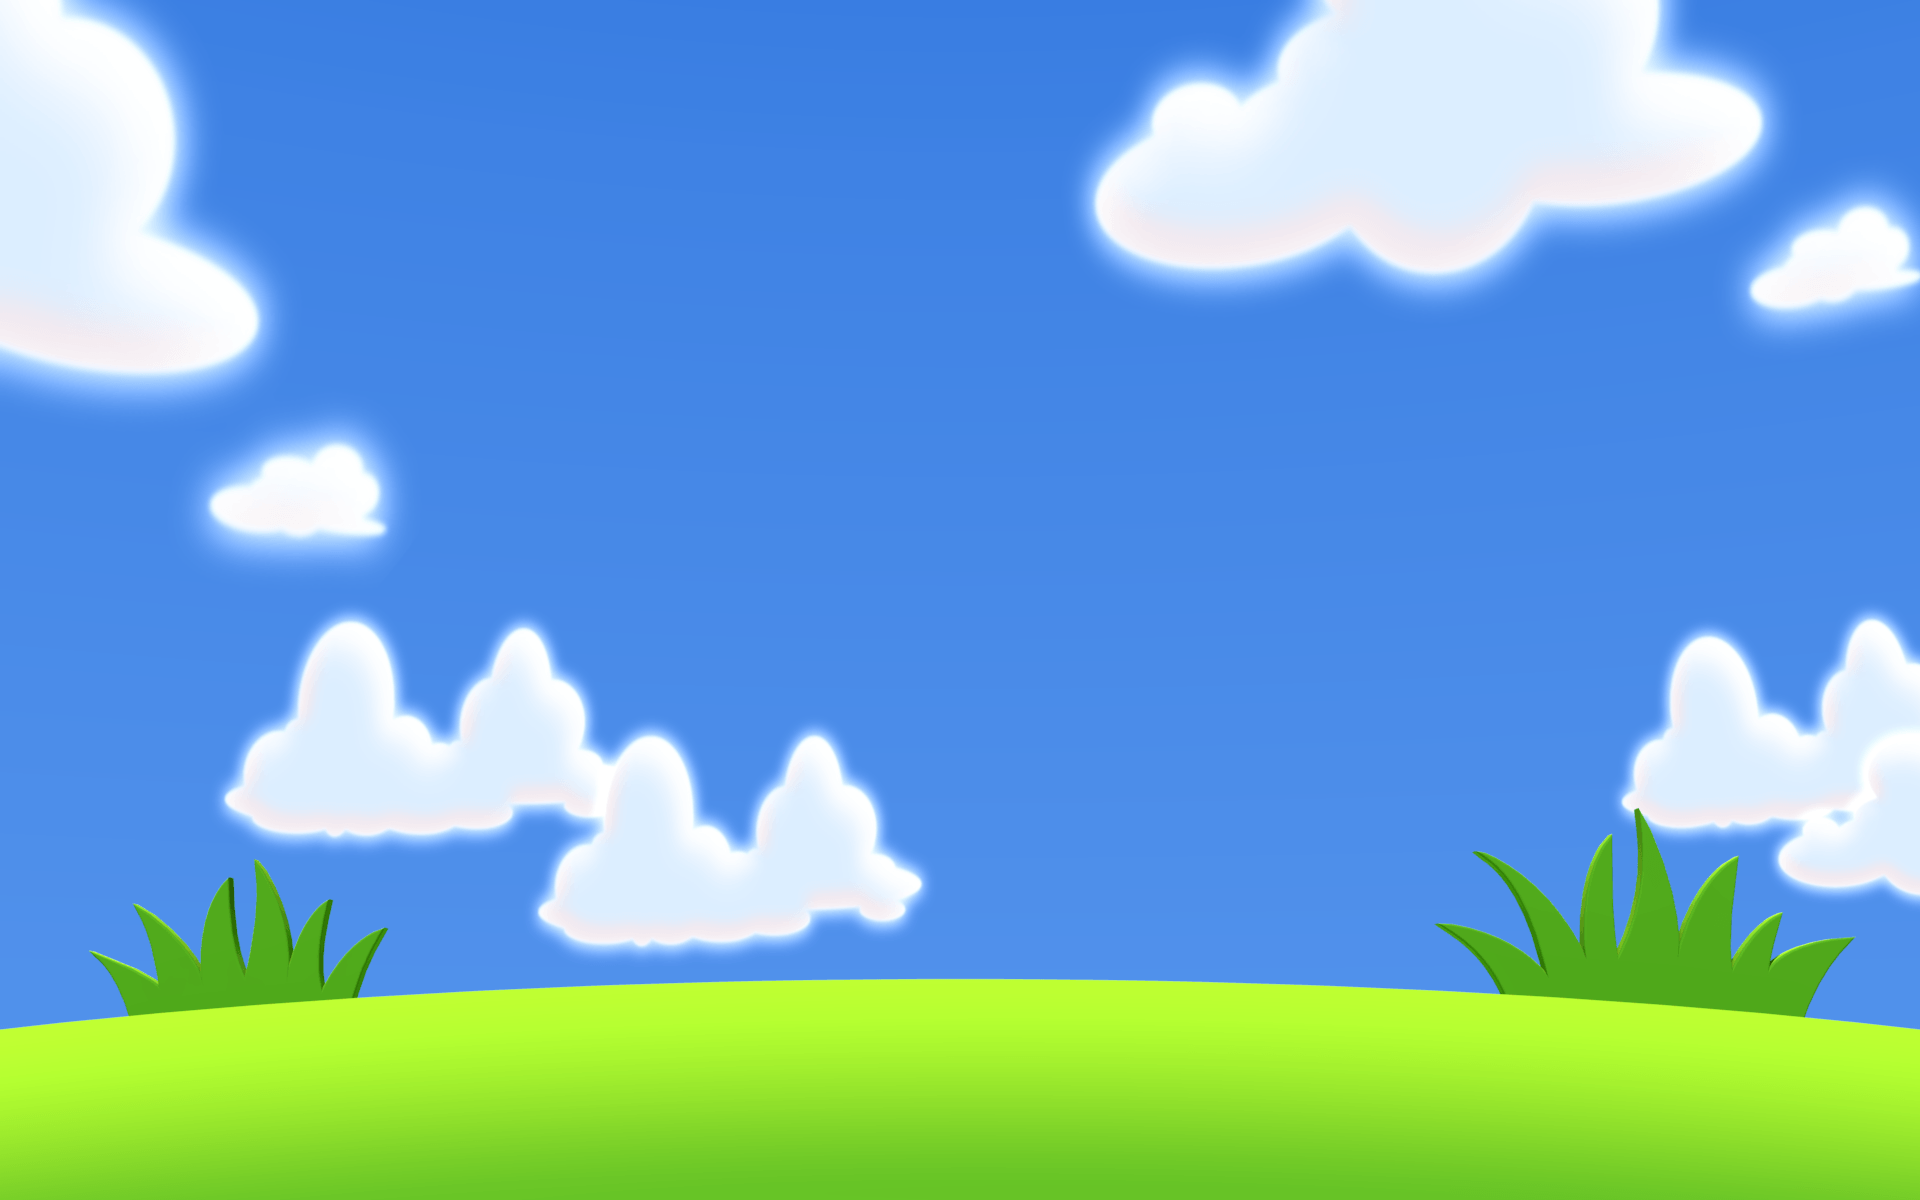 video clipart background - photo #1